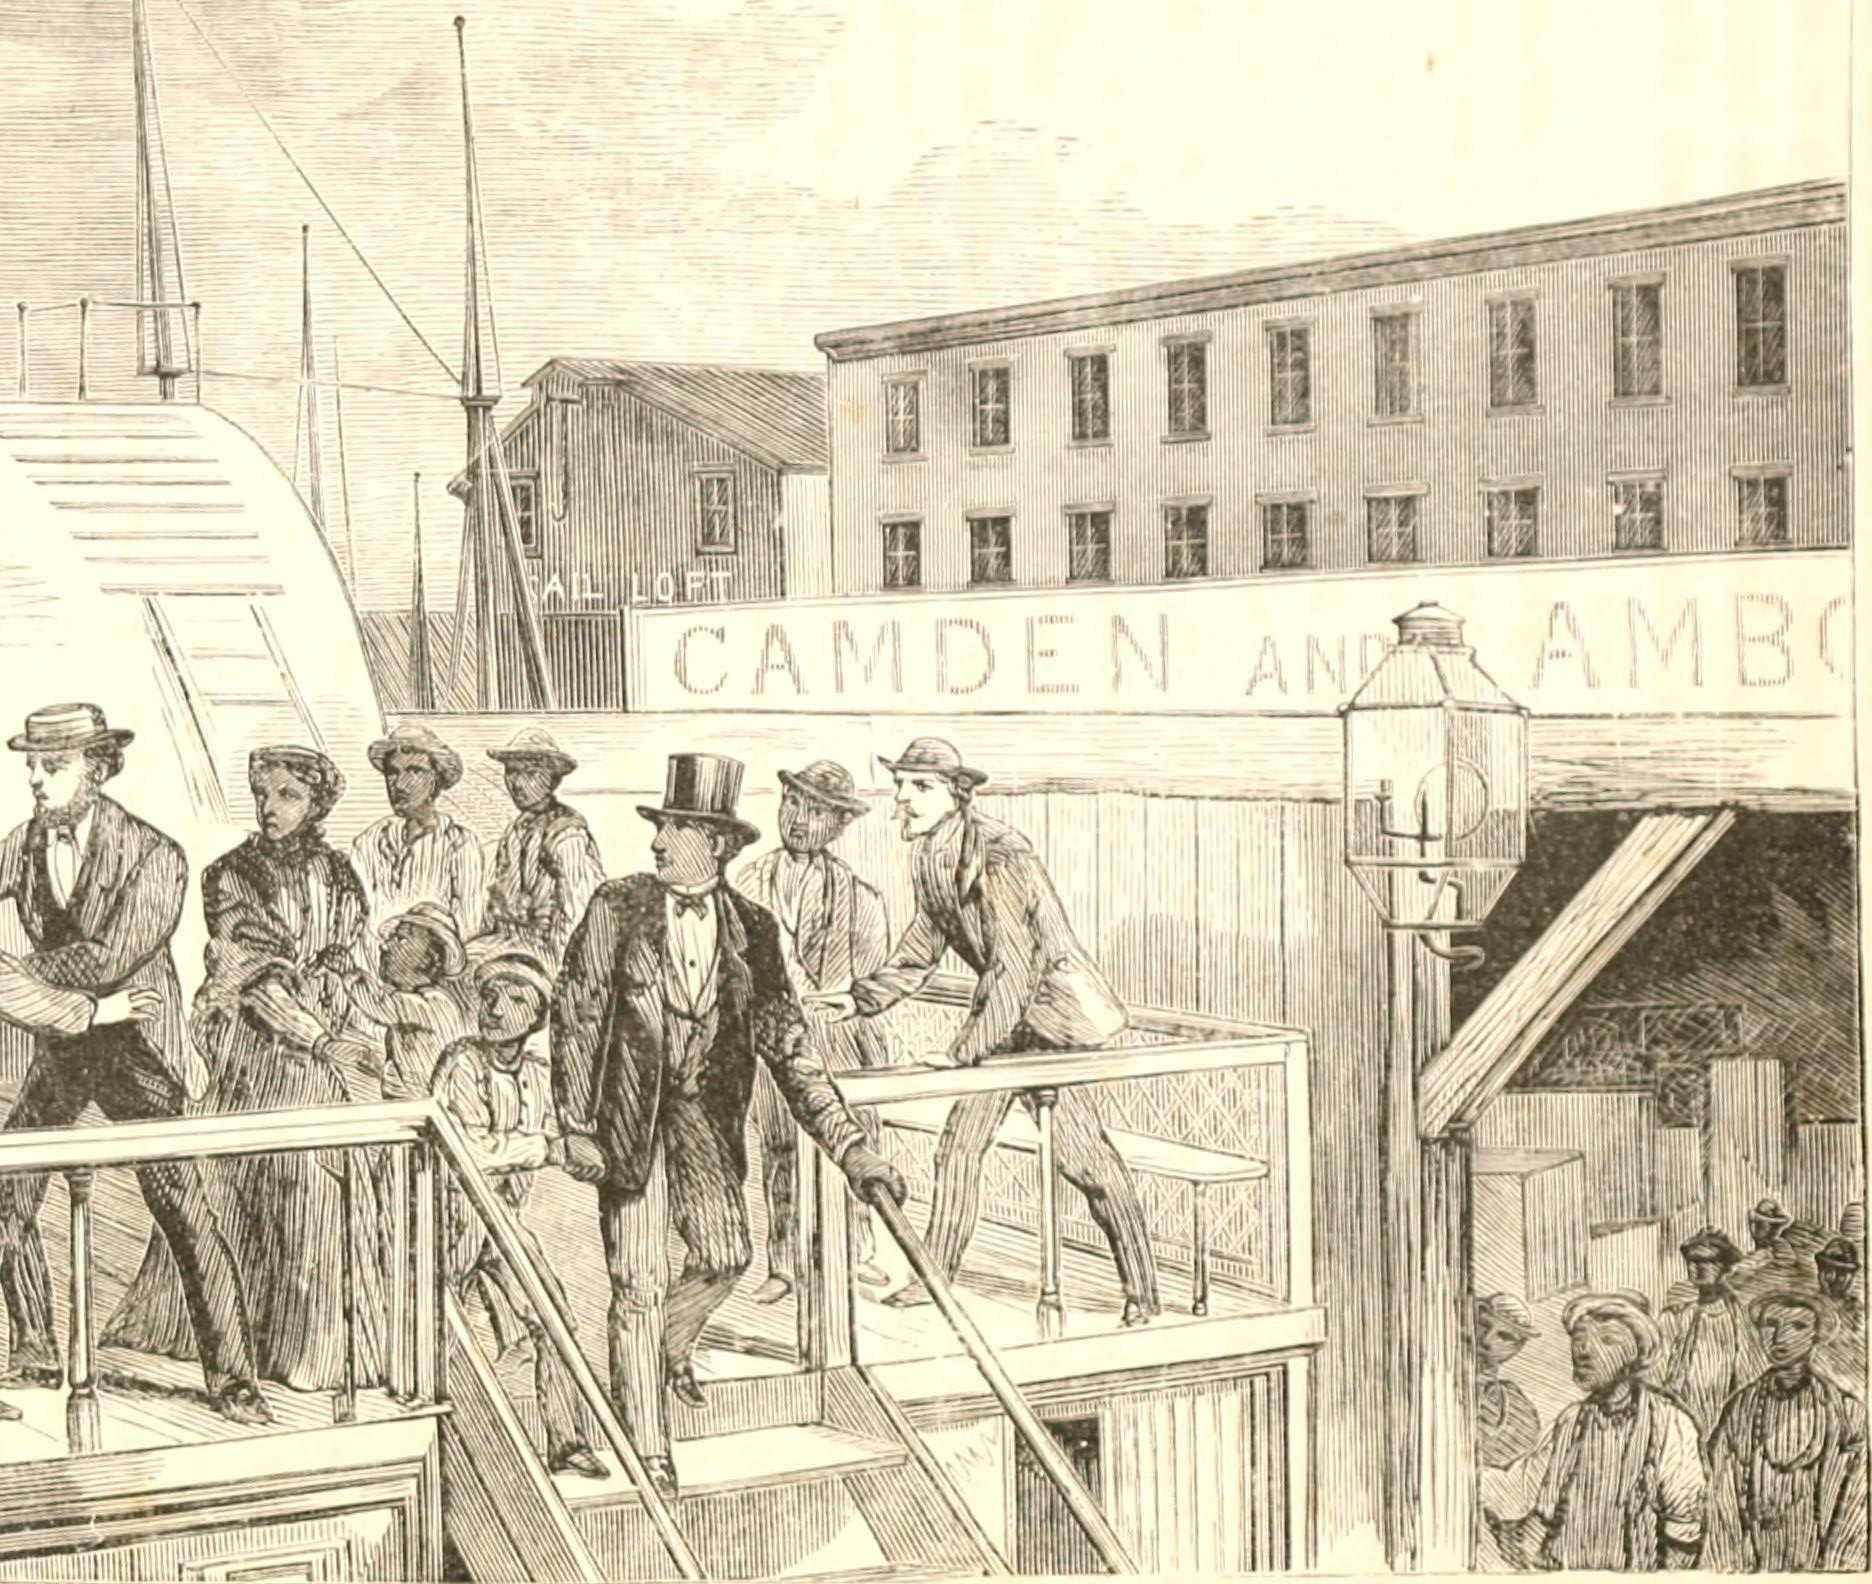 slavery underground rail road Summary visit the site of the city's first slave market and learn about the origins of slavery in colonial new york discover the secret escapes of the underground railroad and view a.